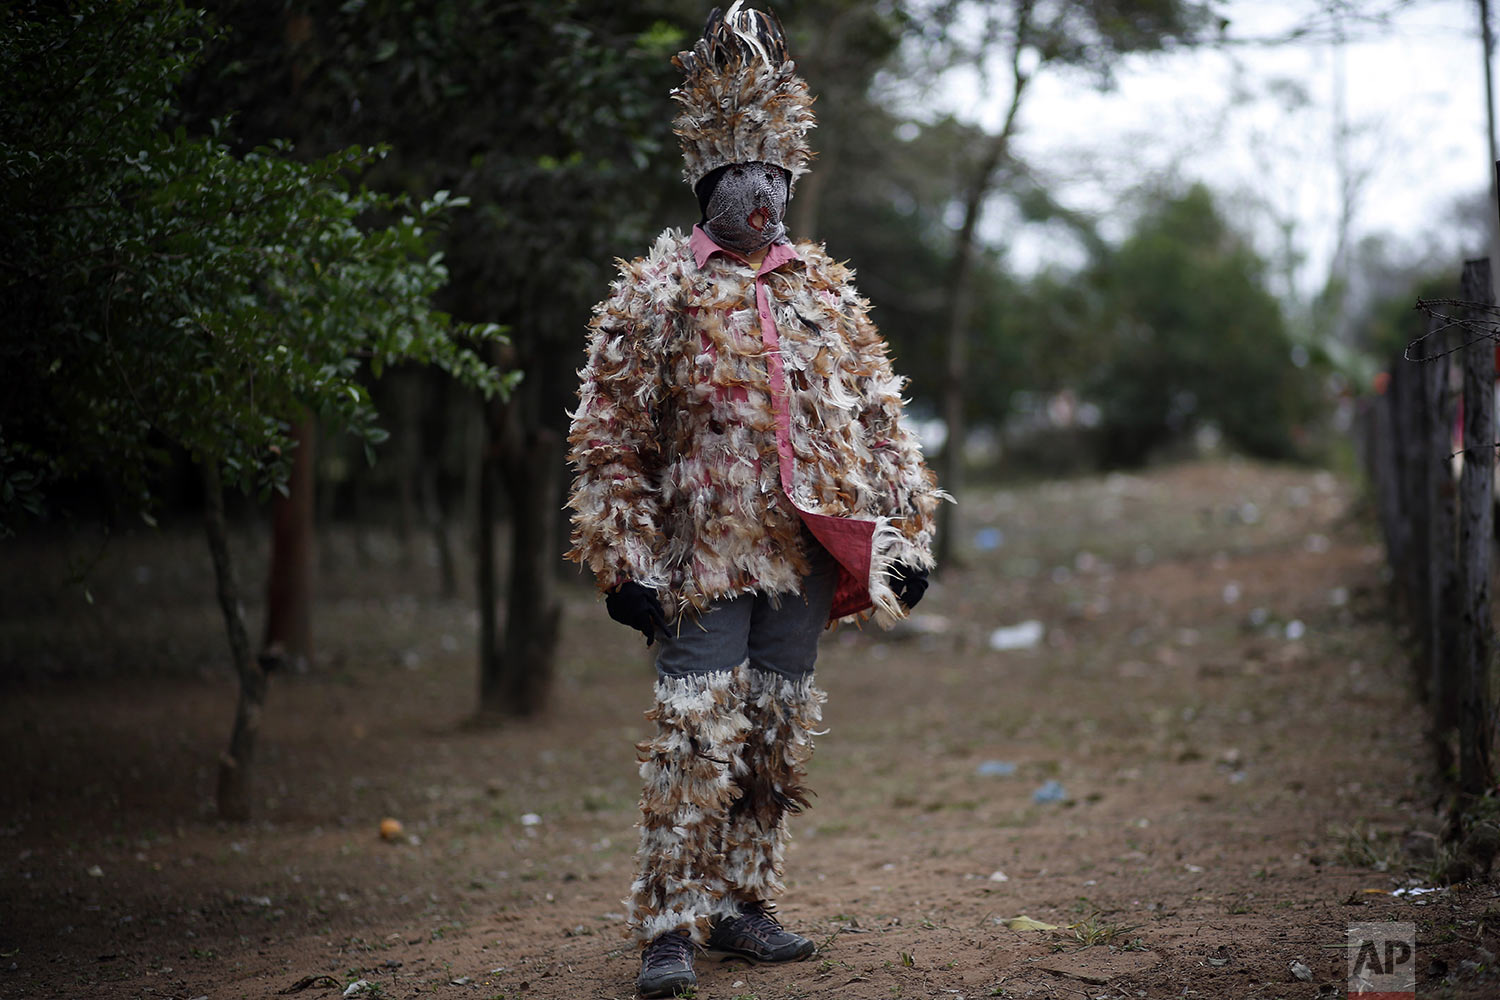 Maria Estela Pereira, mother of 11, poses in her feathered costume, in gratitude to St. Francis Solano, in Emboscada, Paraguay, Wednesday, July 24, 2019. (AP Photo/Jorge Saenz)